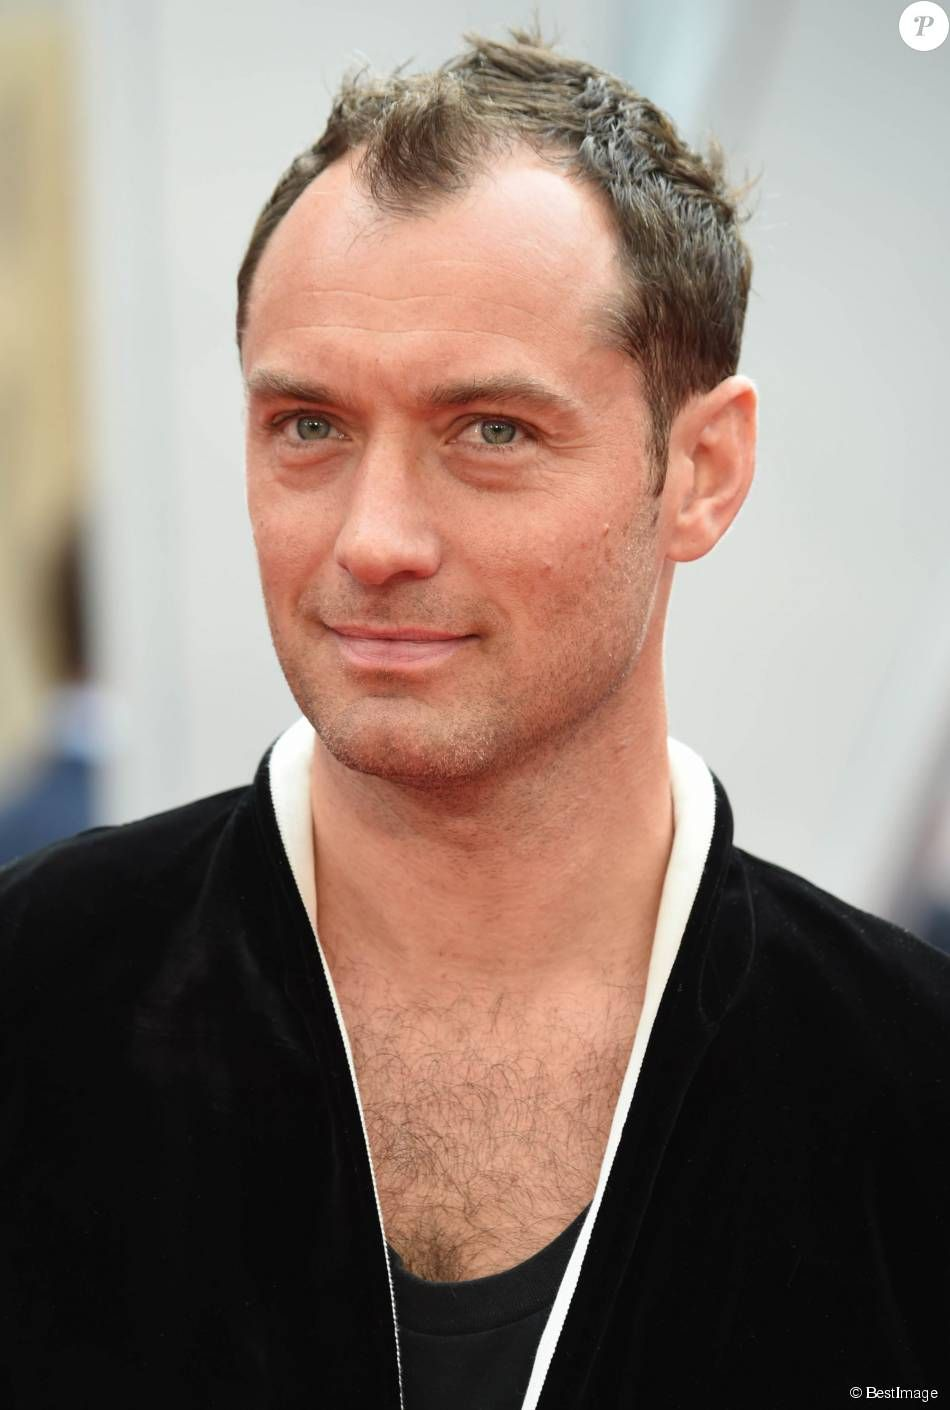 PHOTOS - Jude Law - Première du film Spy à Londres le 27 ... Jude Law